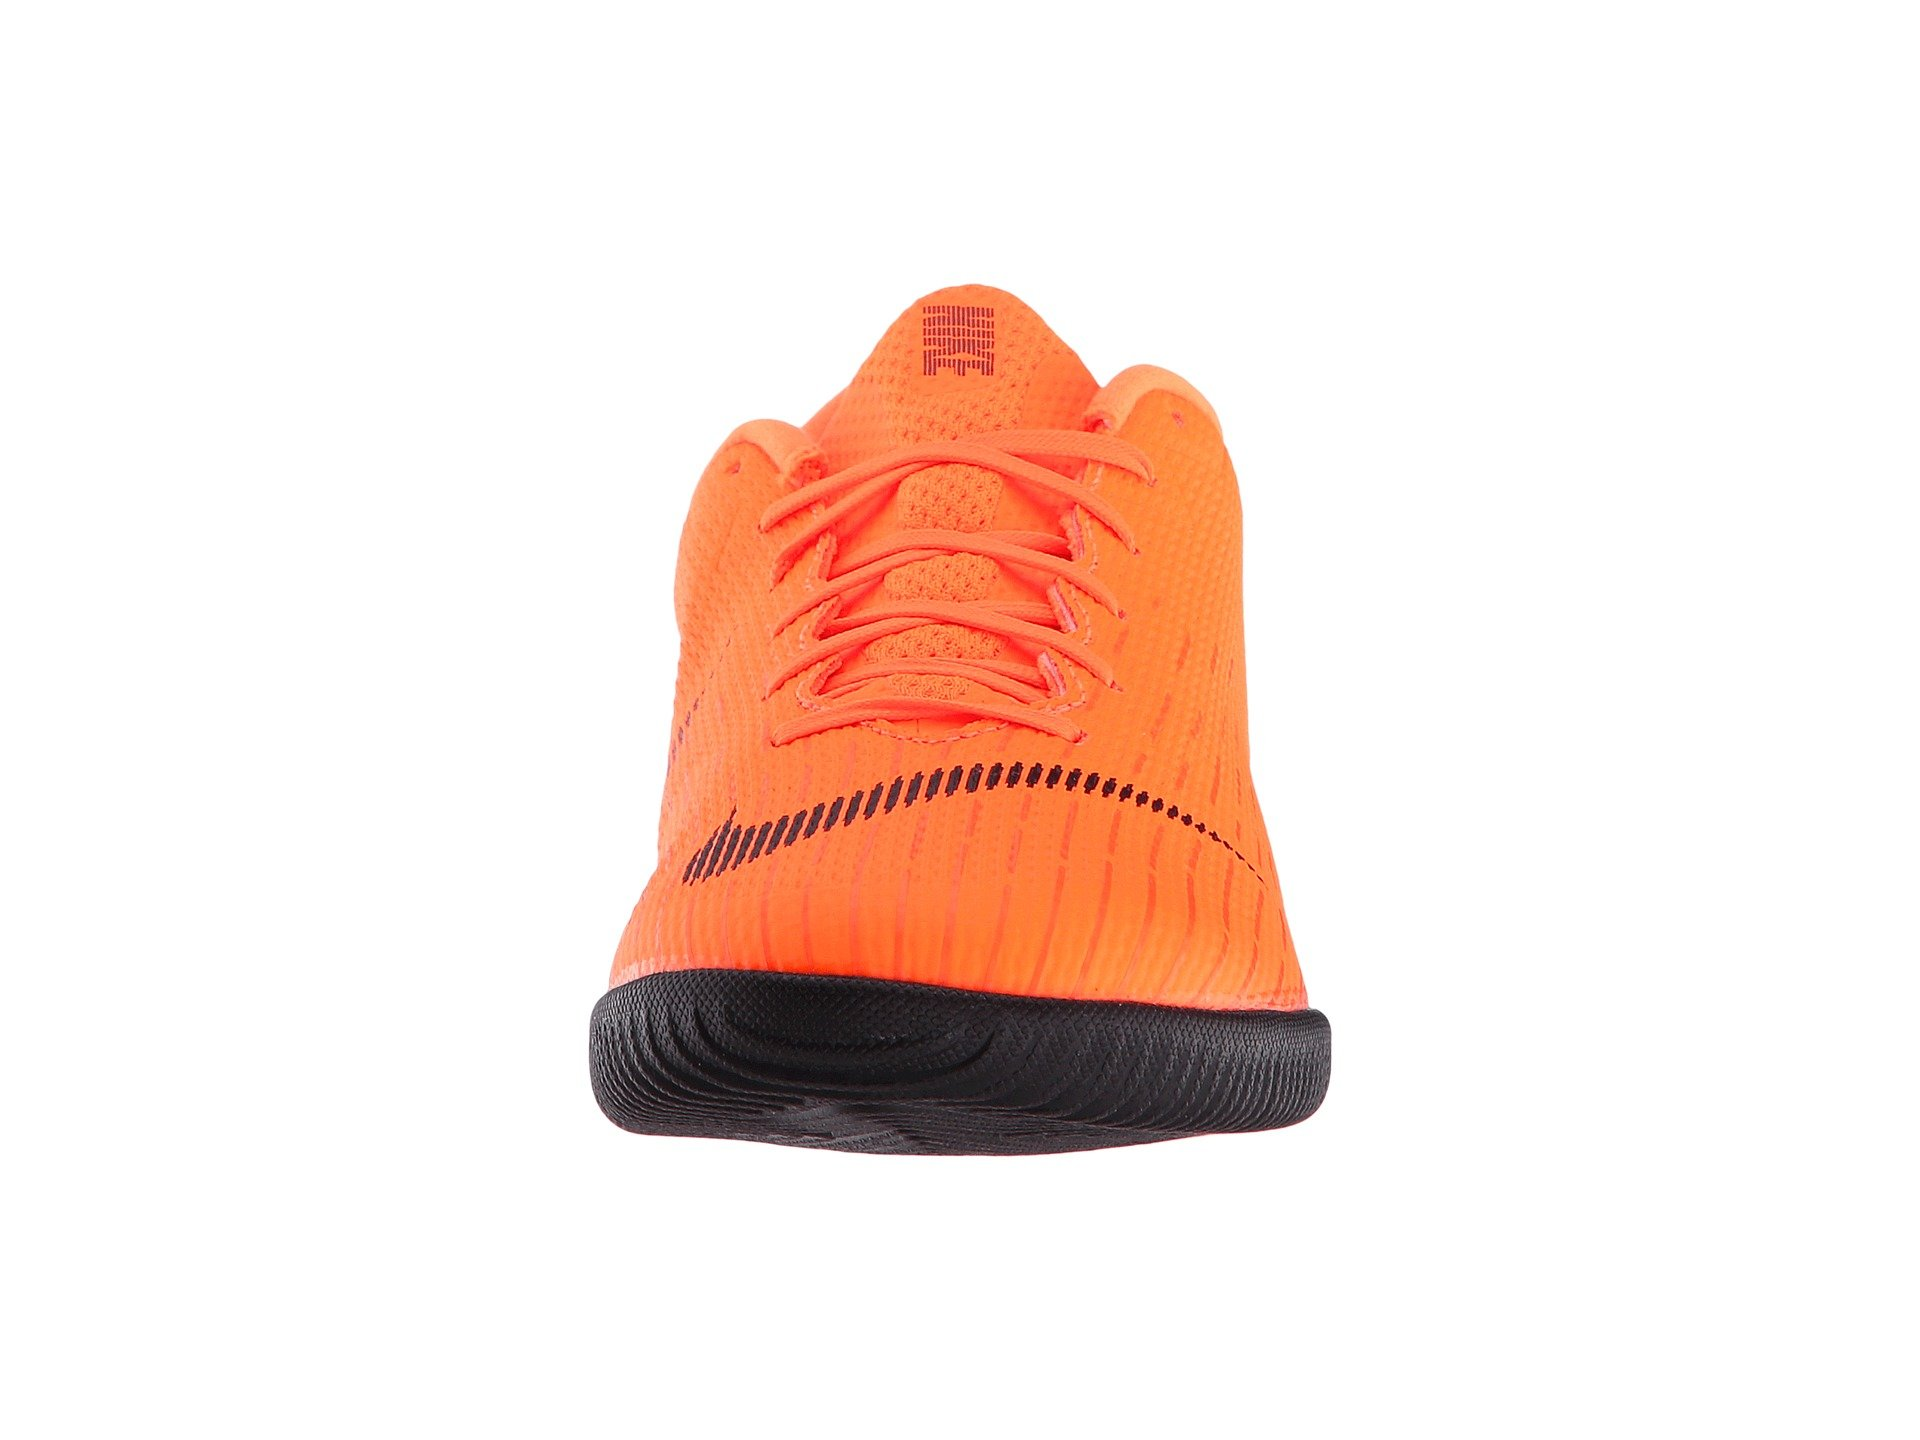 5406a7183289 Nike Air Yeezy 2 Designer Kd Shoes Vii